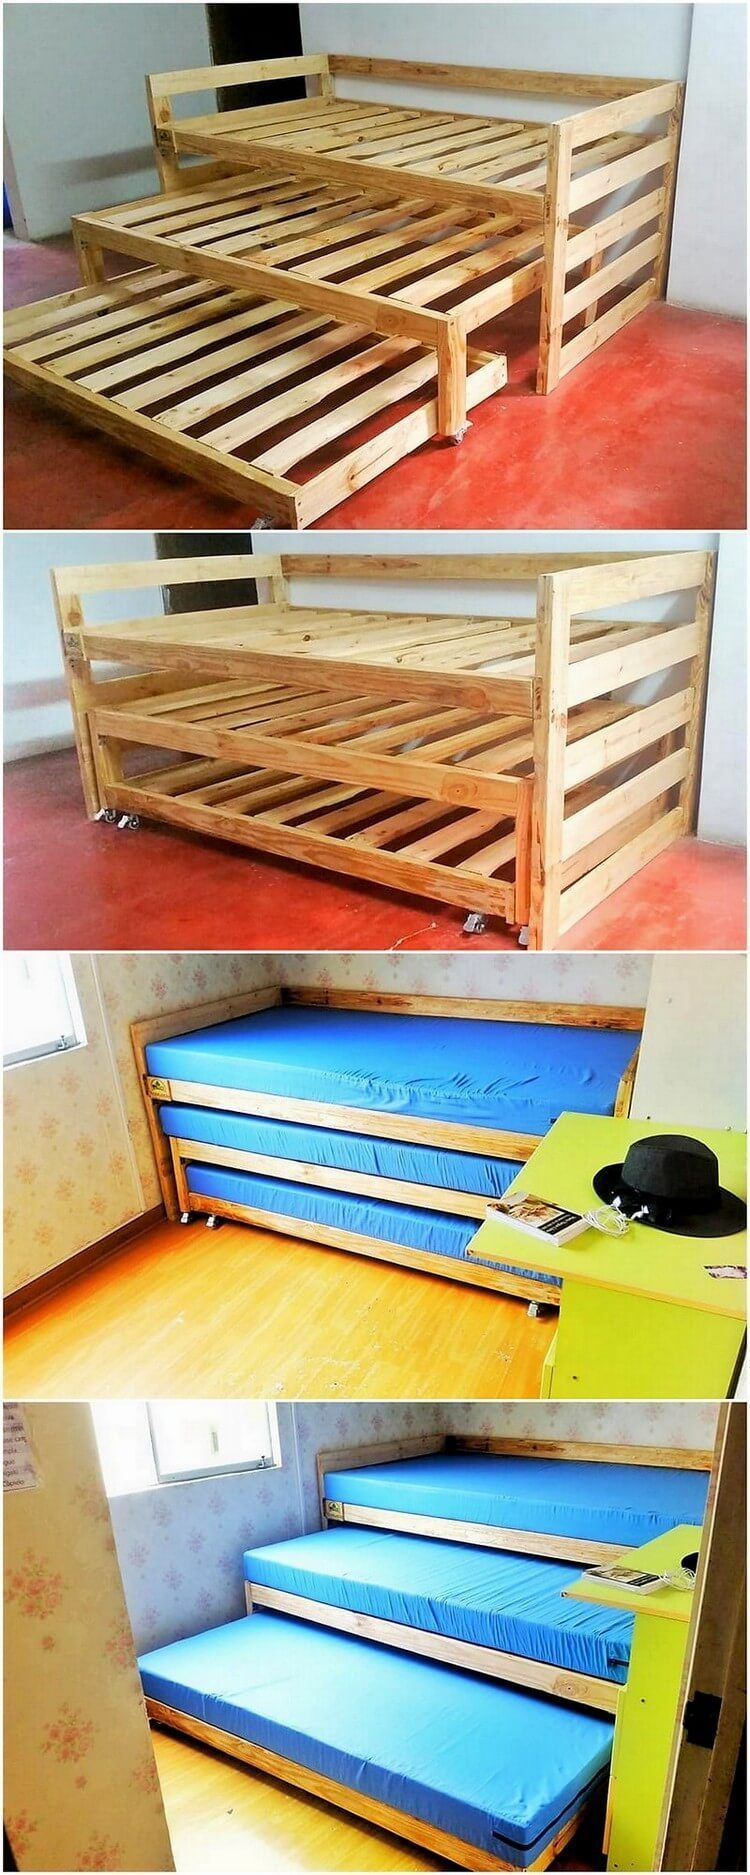 Plywood loft bed plans  Amusing Ideas with Recycled Wood Pallets  Bunk bed designs Pallet